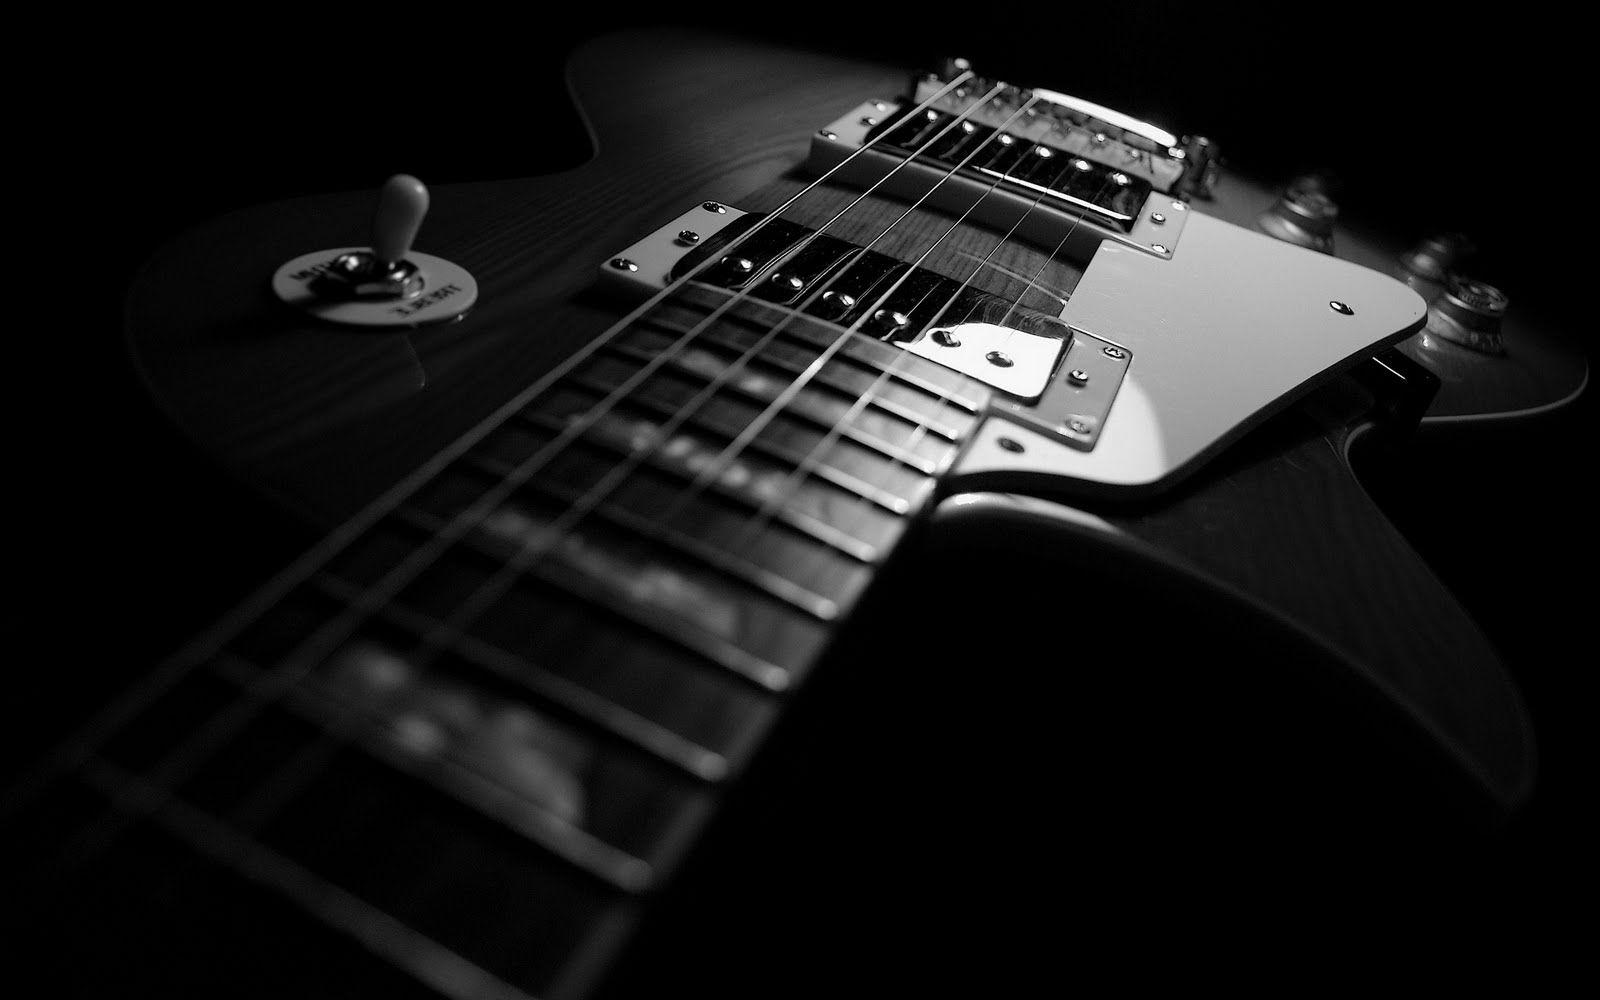 Hd Wallpapers Black Guitar